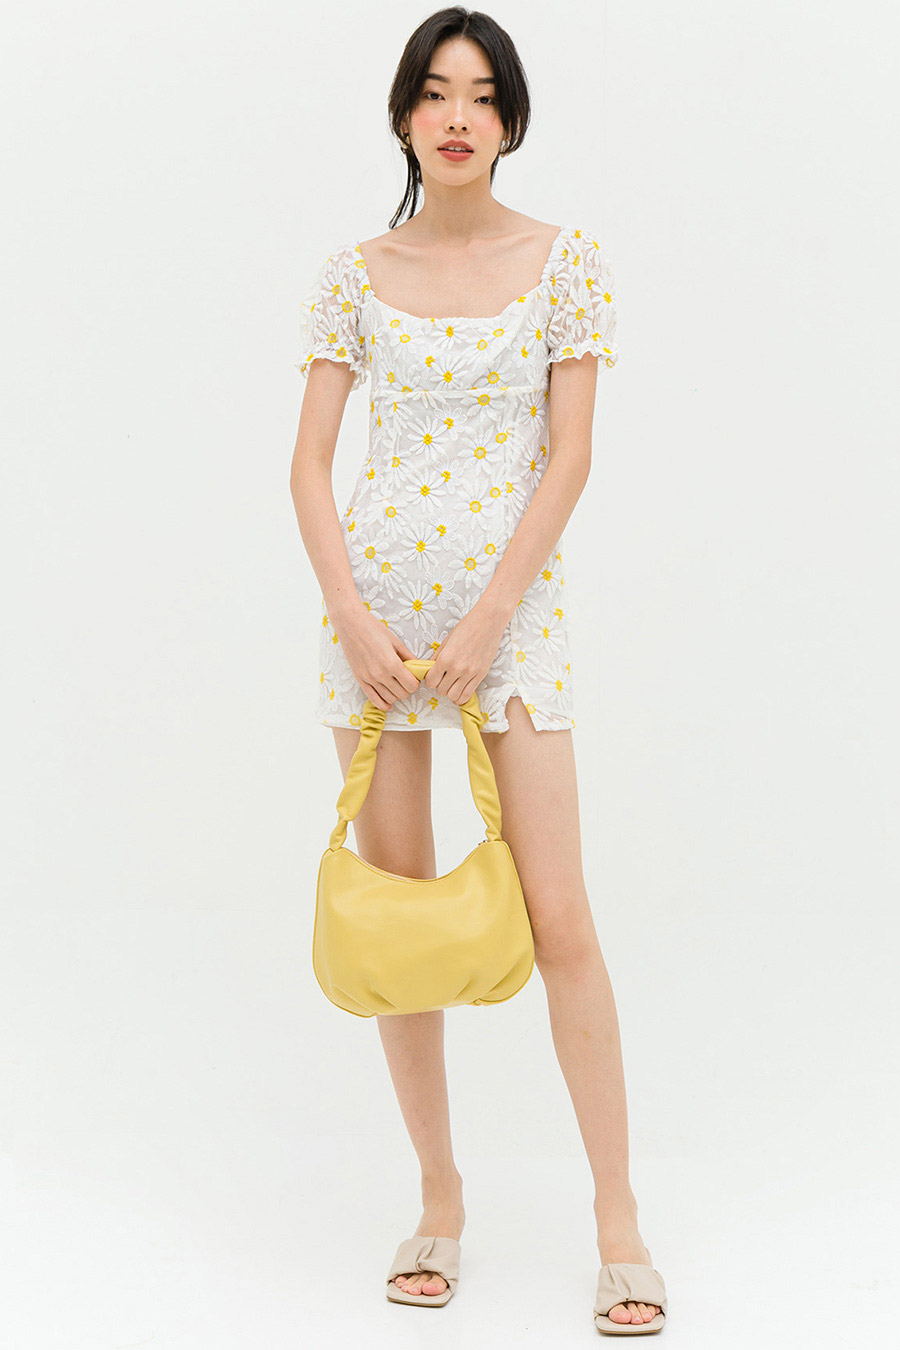 *RESTOCKED* ANTONIETTE DRESS - DAISY